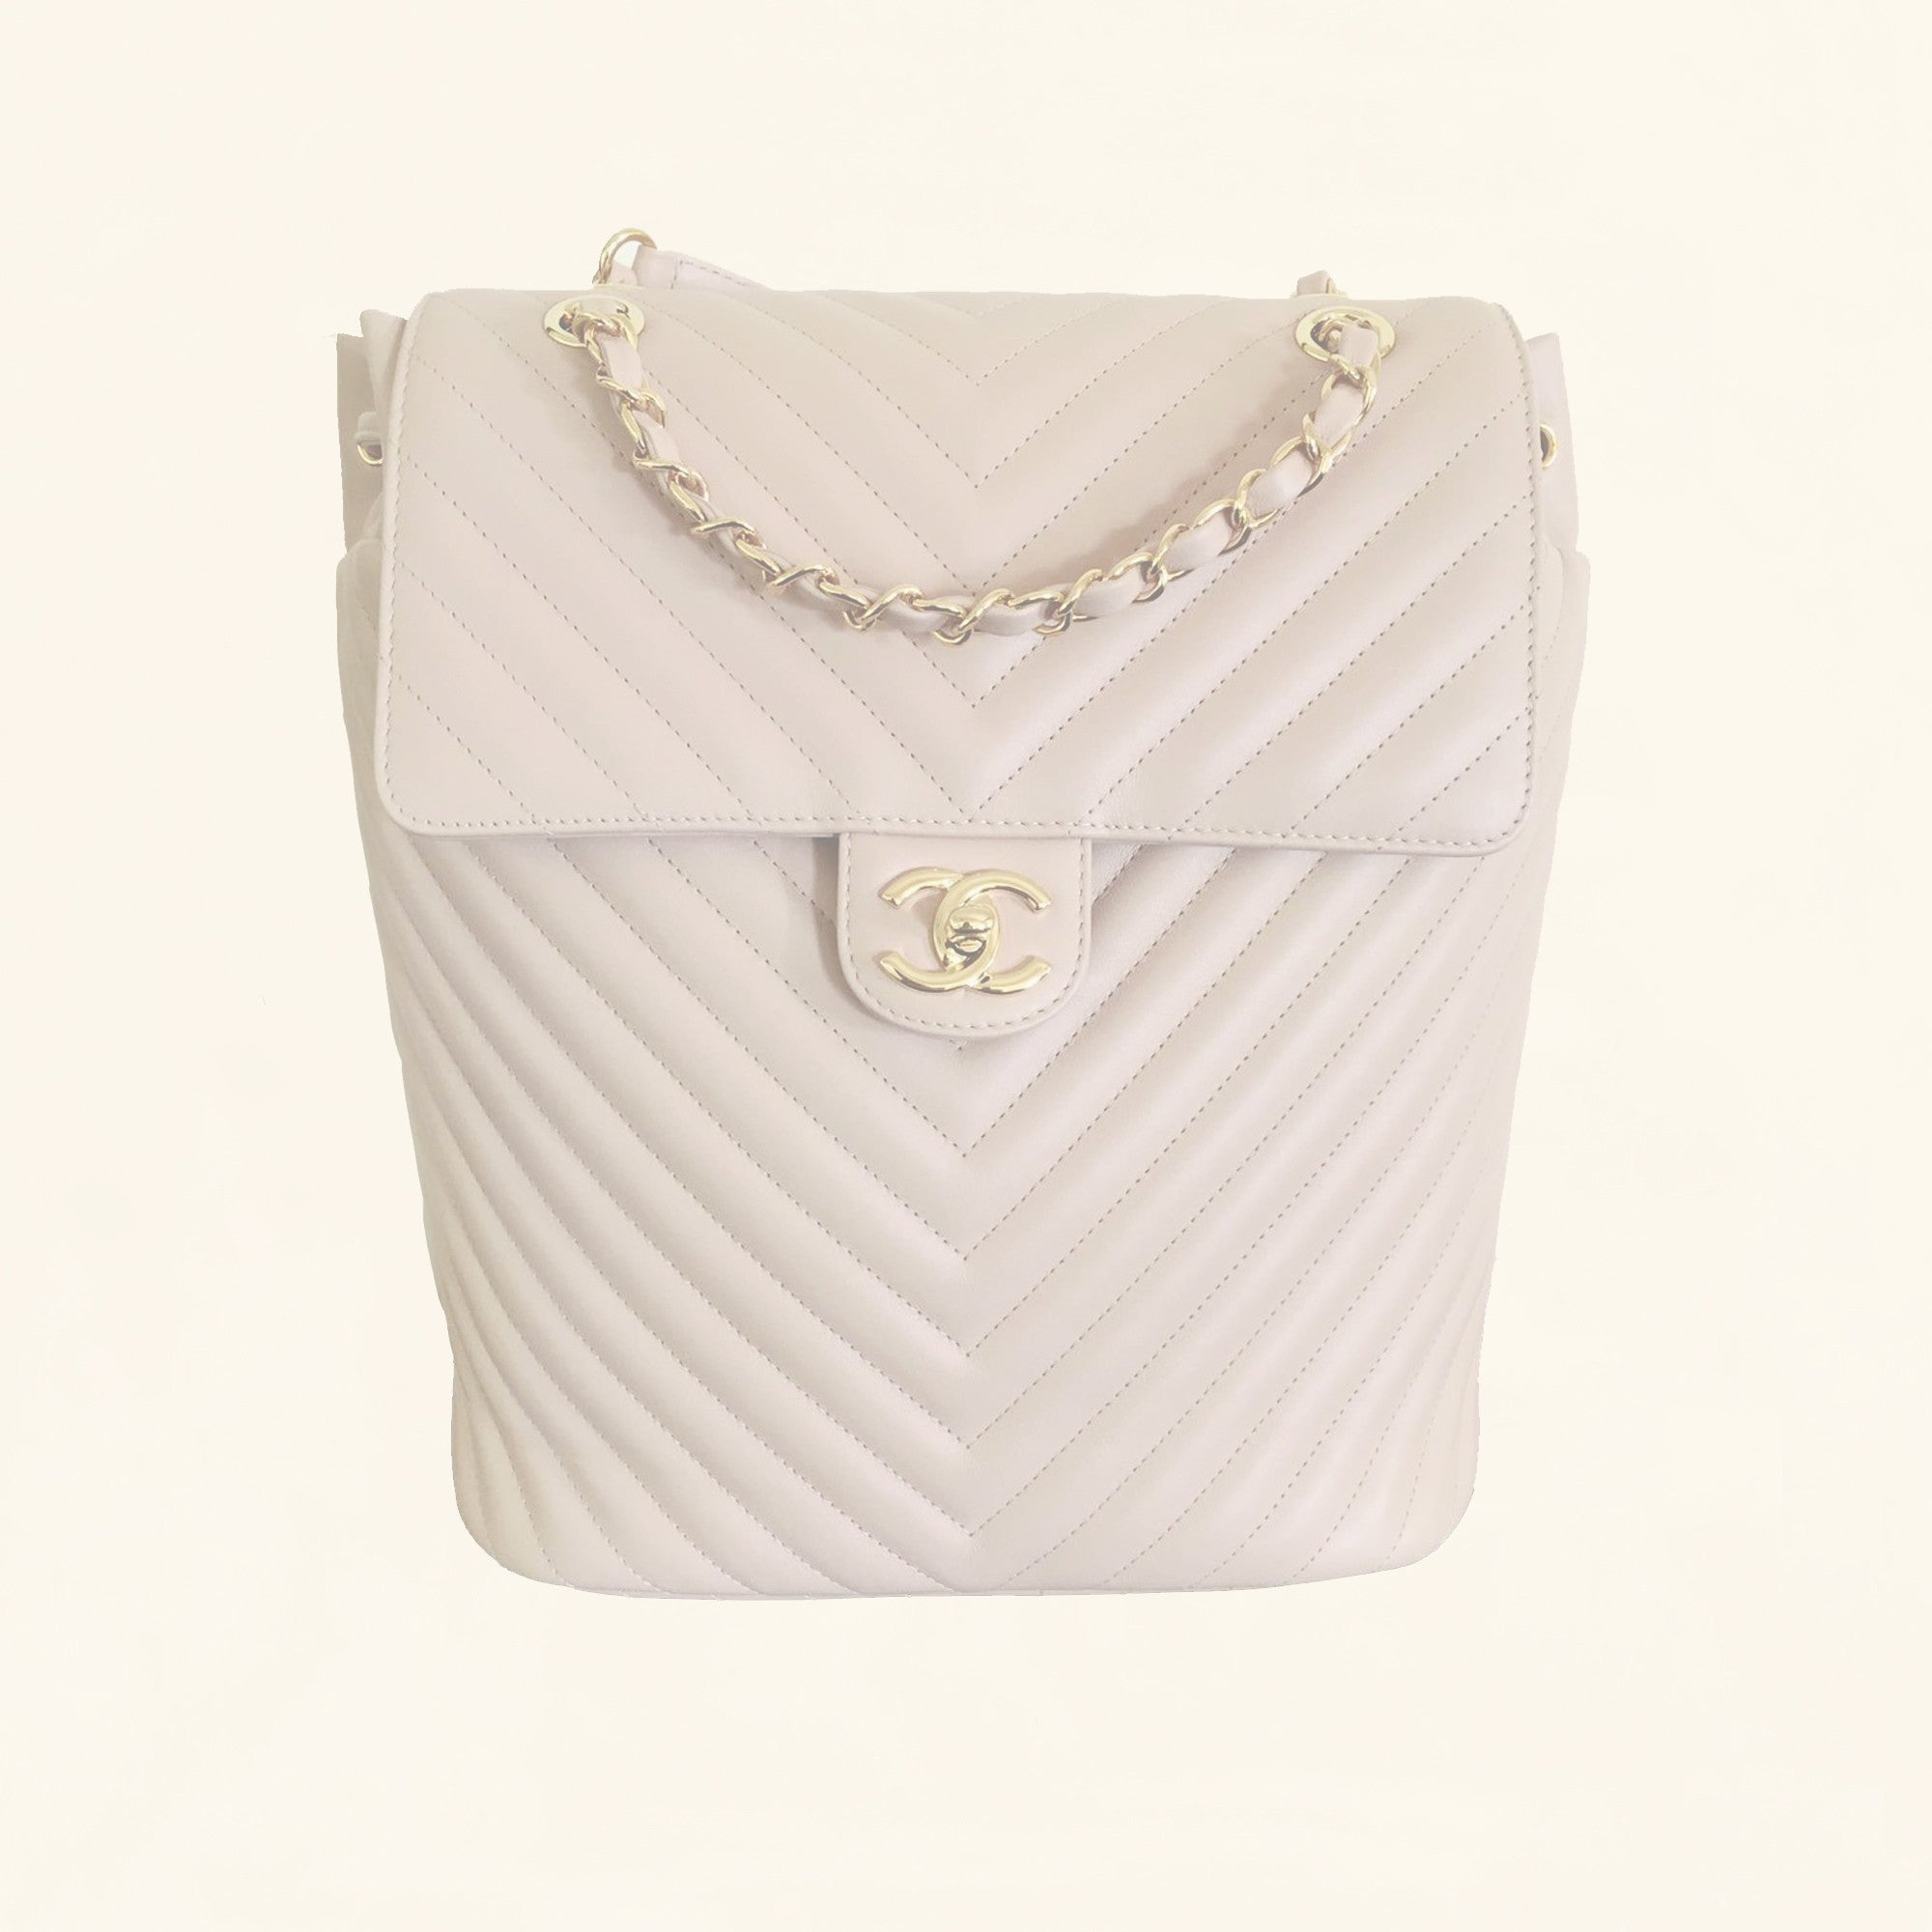 719669a3f20a Chanel | Chevron Urban Spirit Backpack | Large - The-Collectory